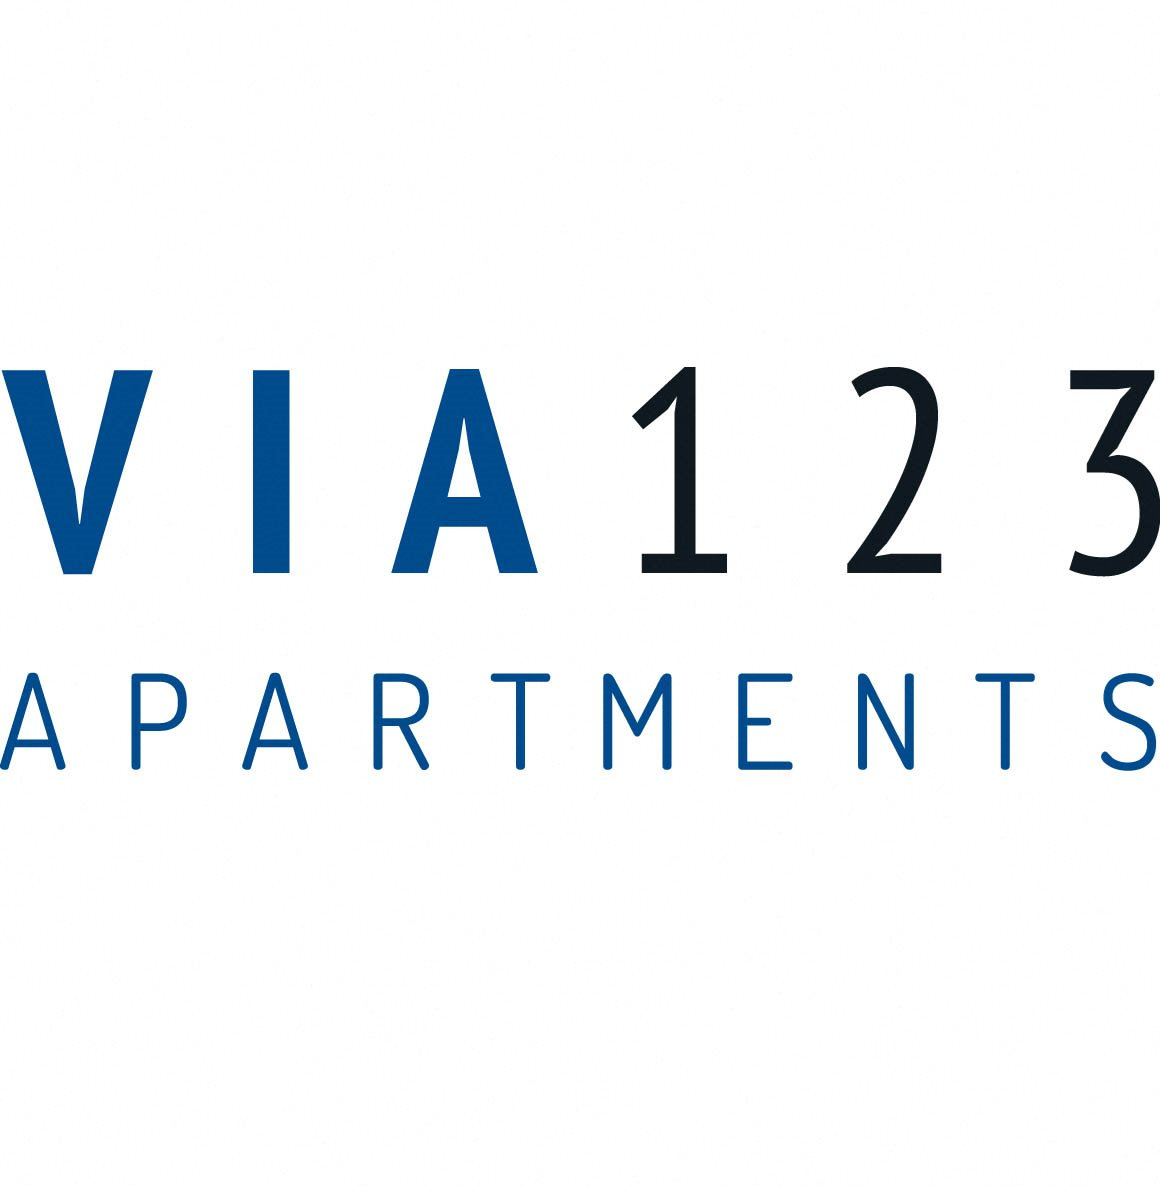 VIA123 Property Logo 7